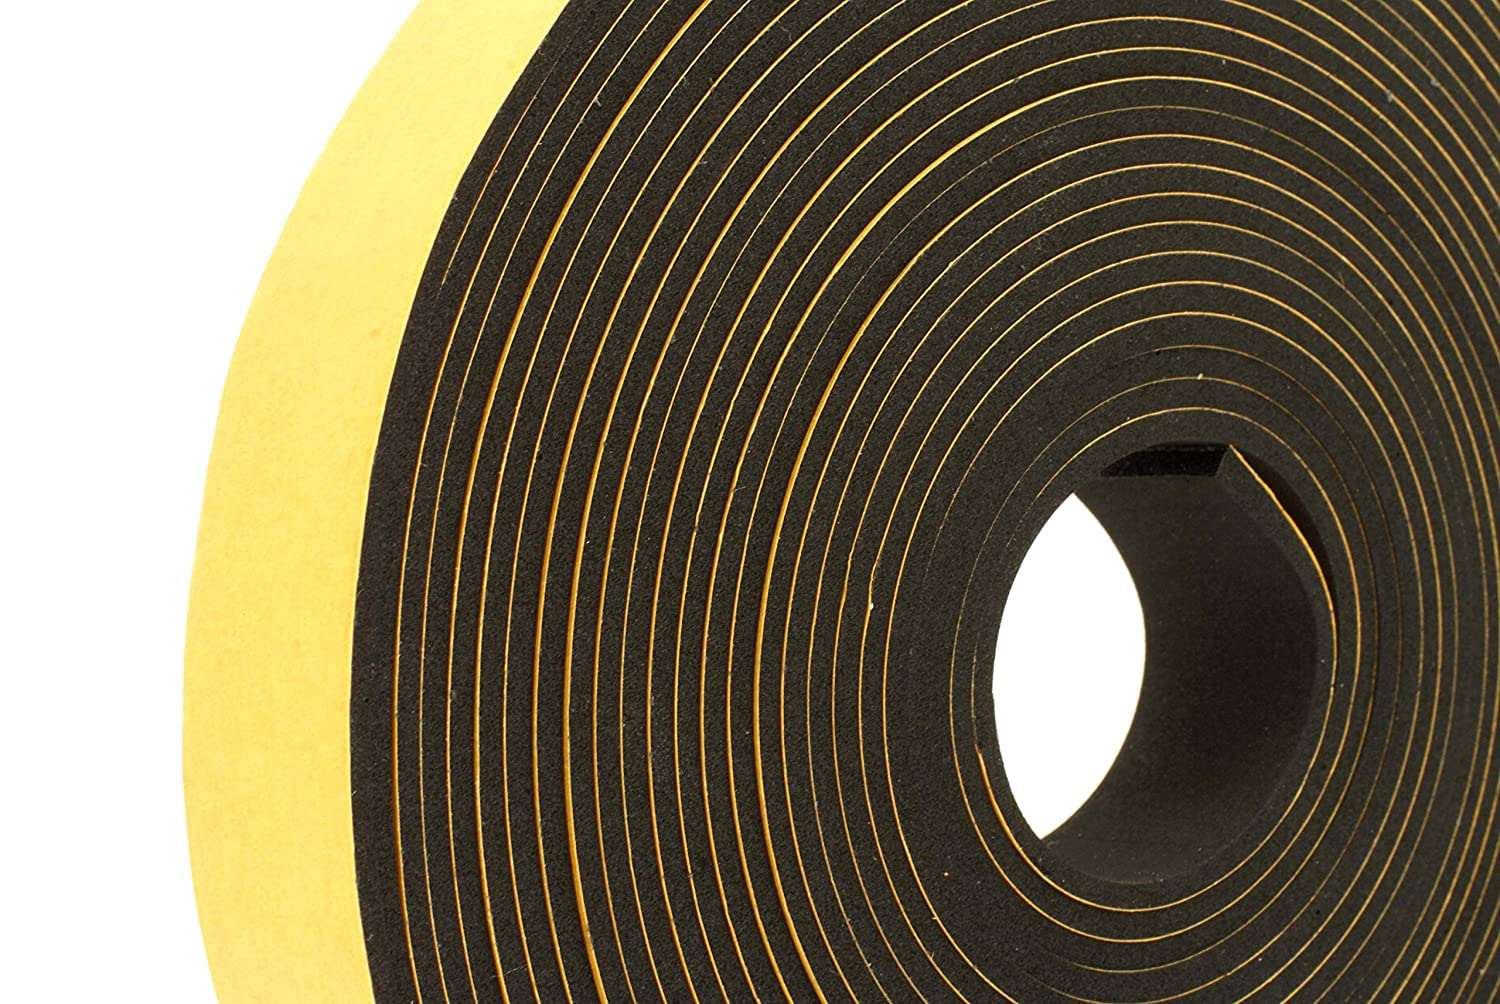 NEOPRENE RUBBER SPONGE Self Adhesive Strip 1 wide x 1 8 thick x 33 feet long